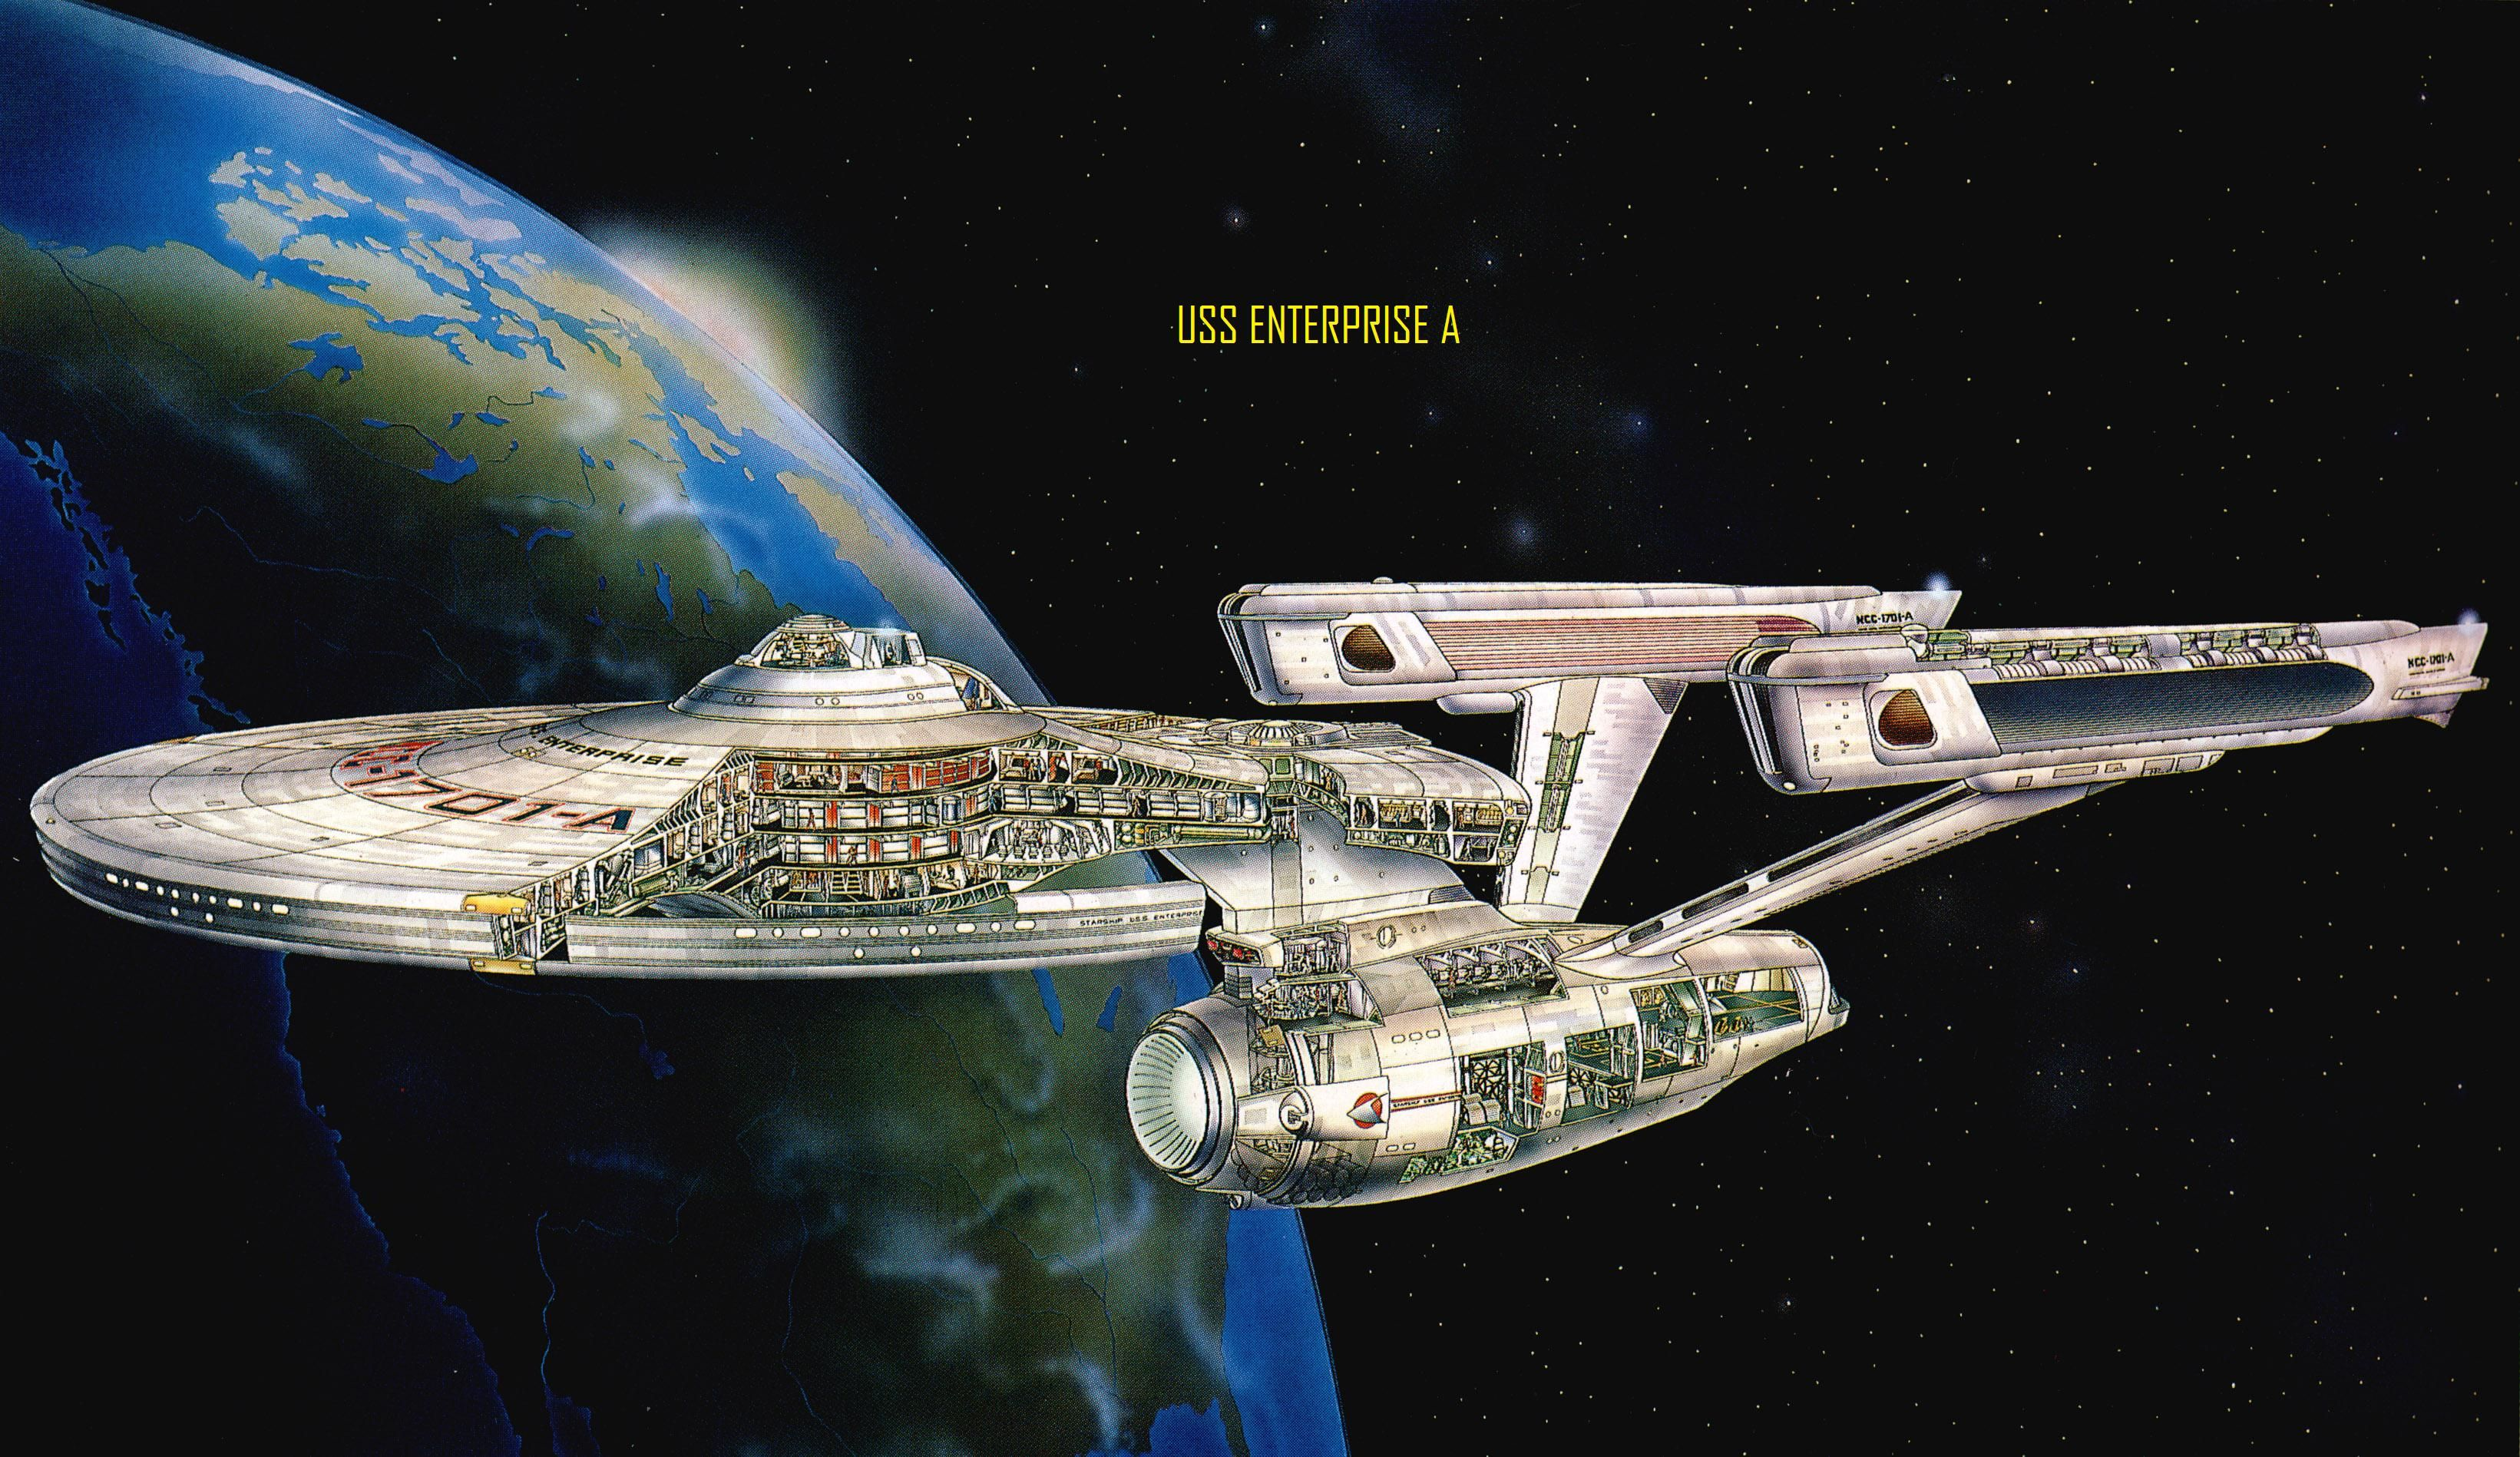 this cutaway of the enterprise blew my mind as a kid i had